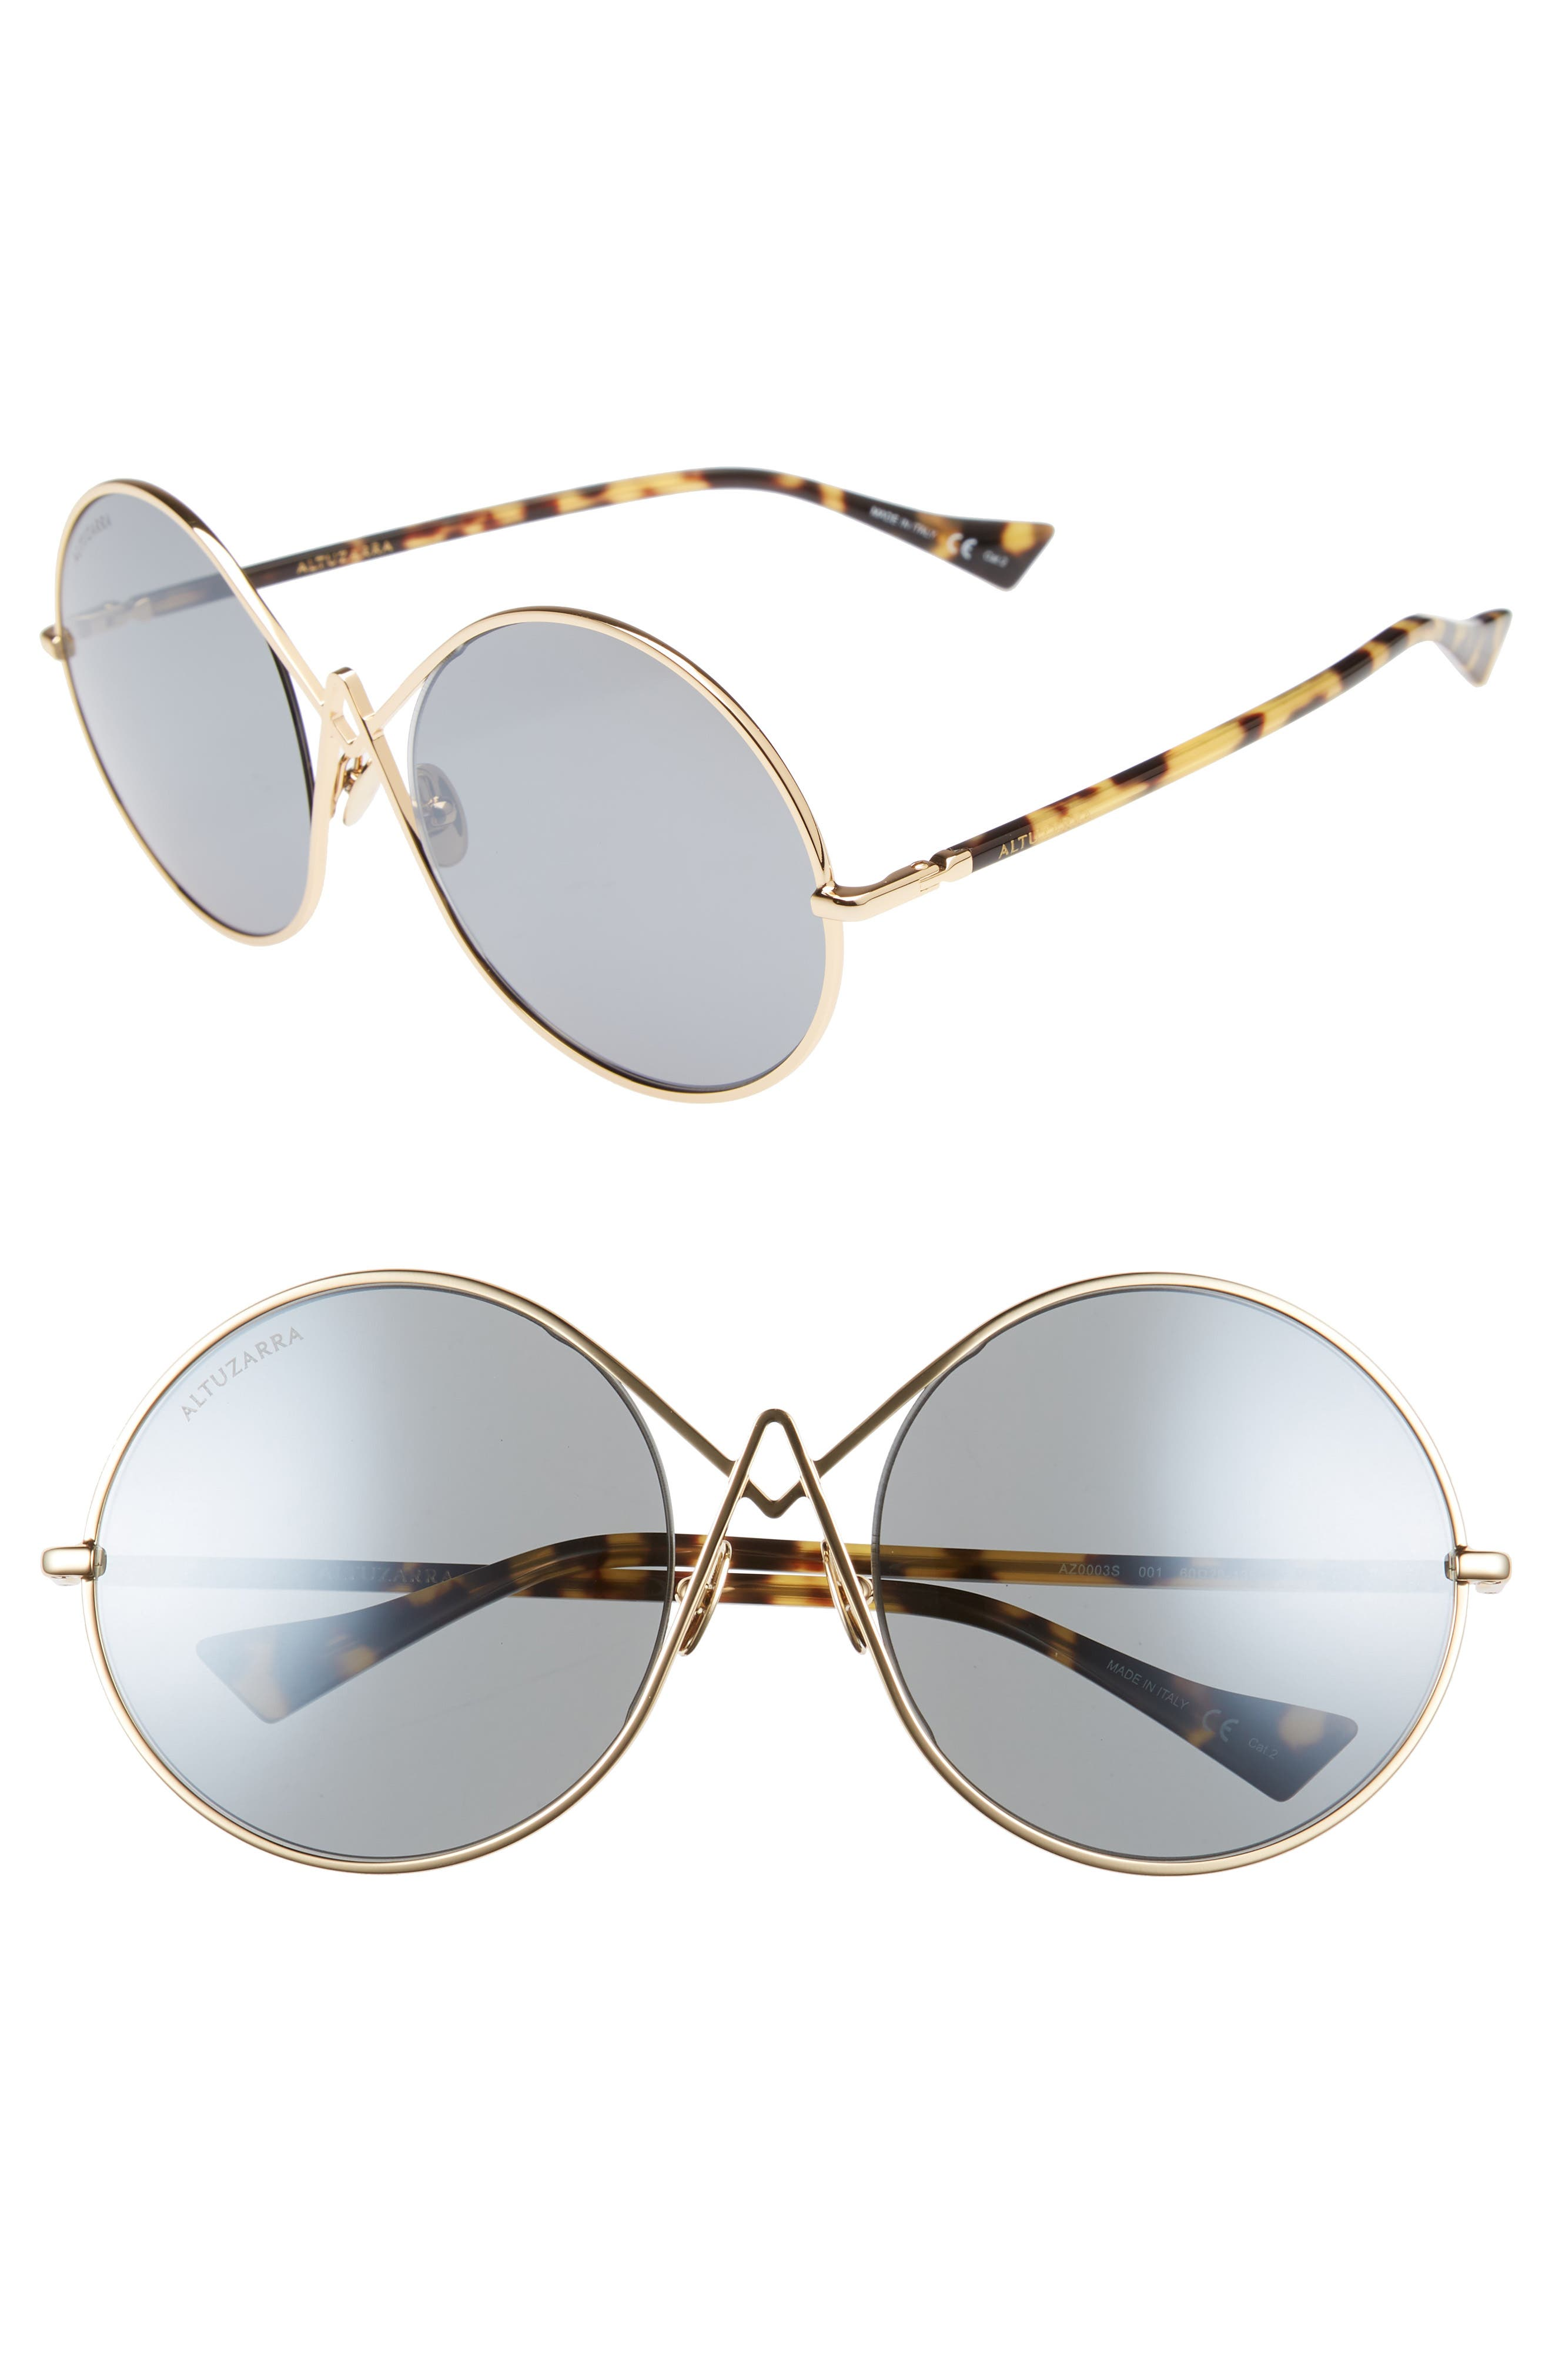 60mm Round Sunglasses,                             Main thumbnail 1, color,                             Gold